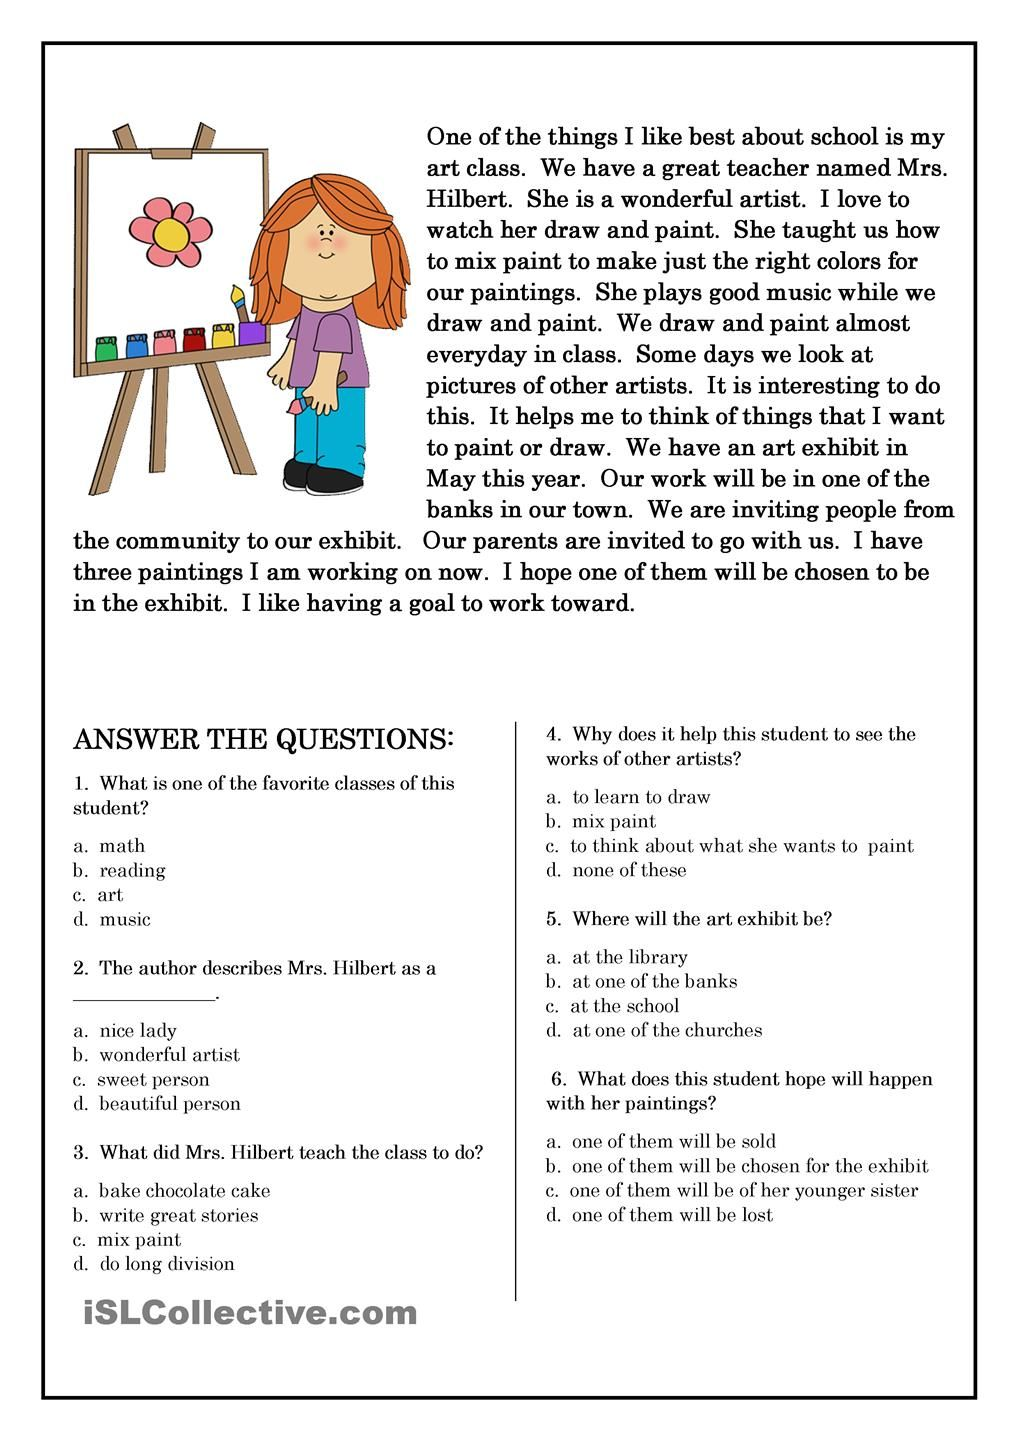 Worksheets Free Reading Comprehension Worksheets Grade 2 1000 images about reading comprehension on pinterest